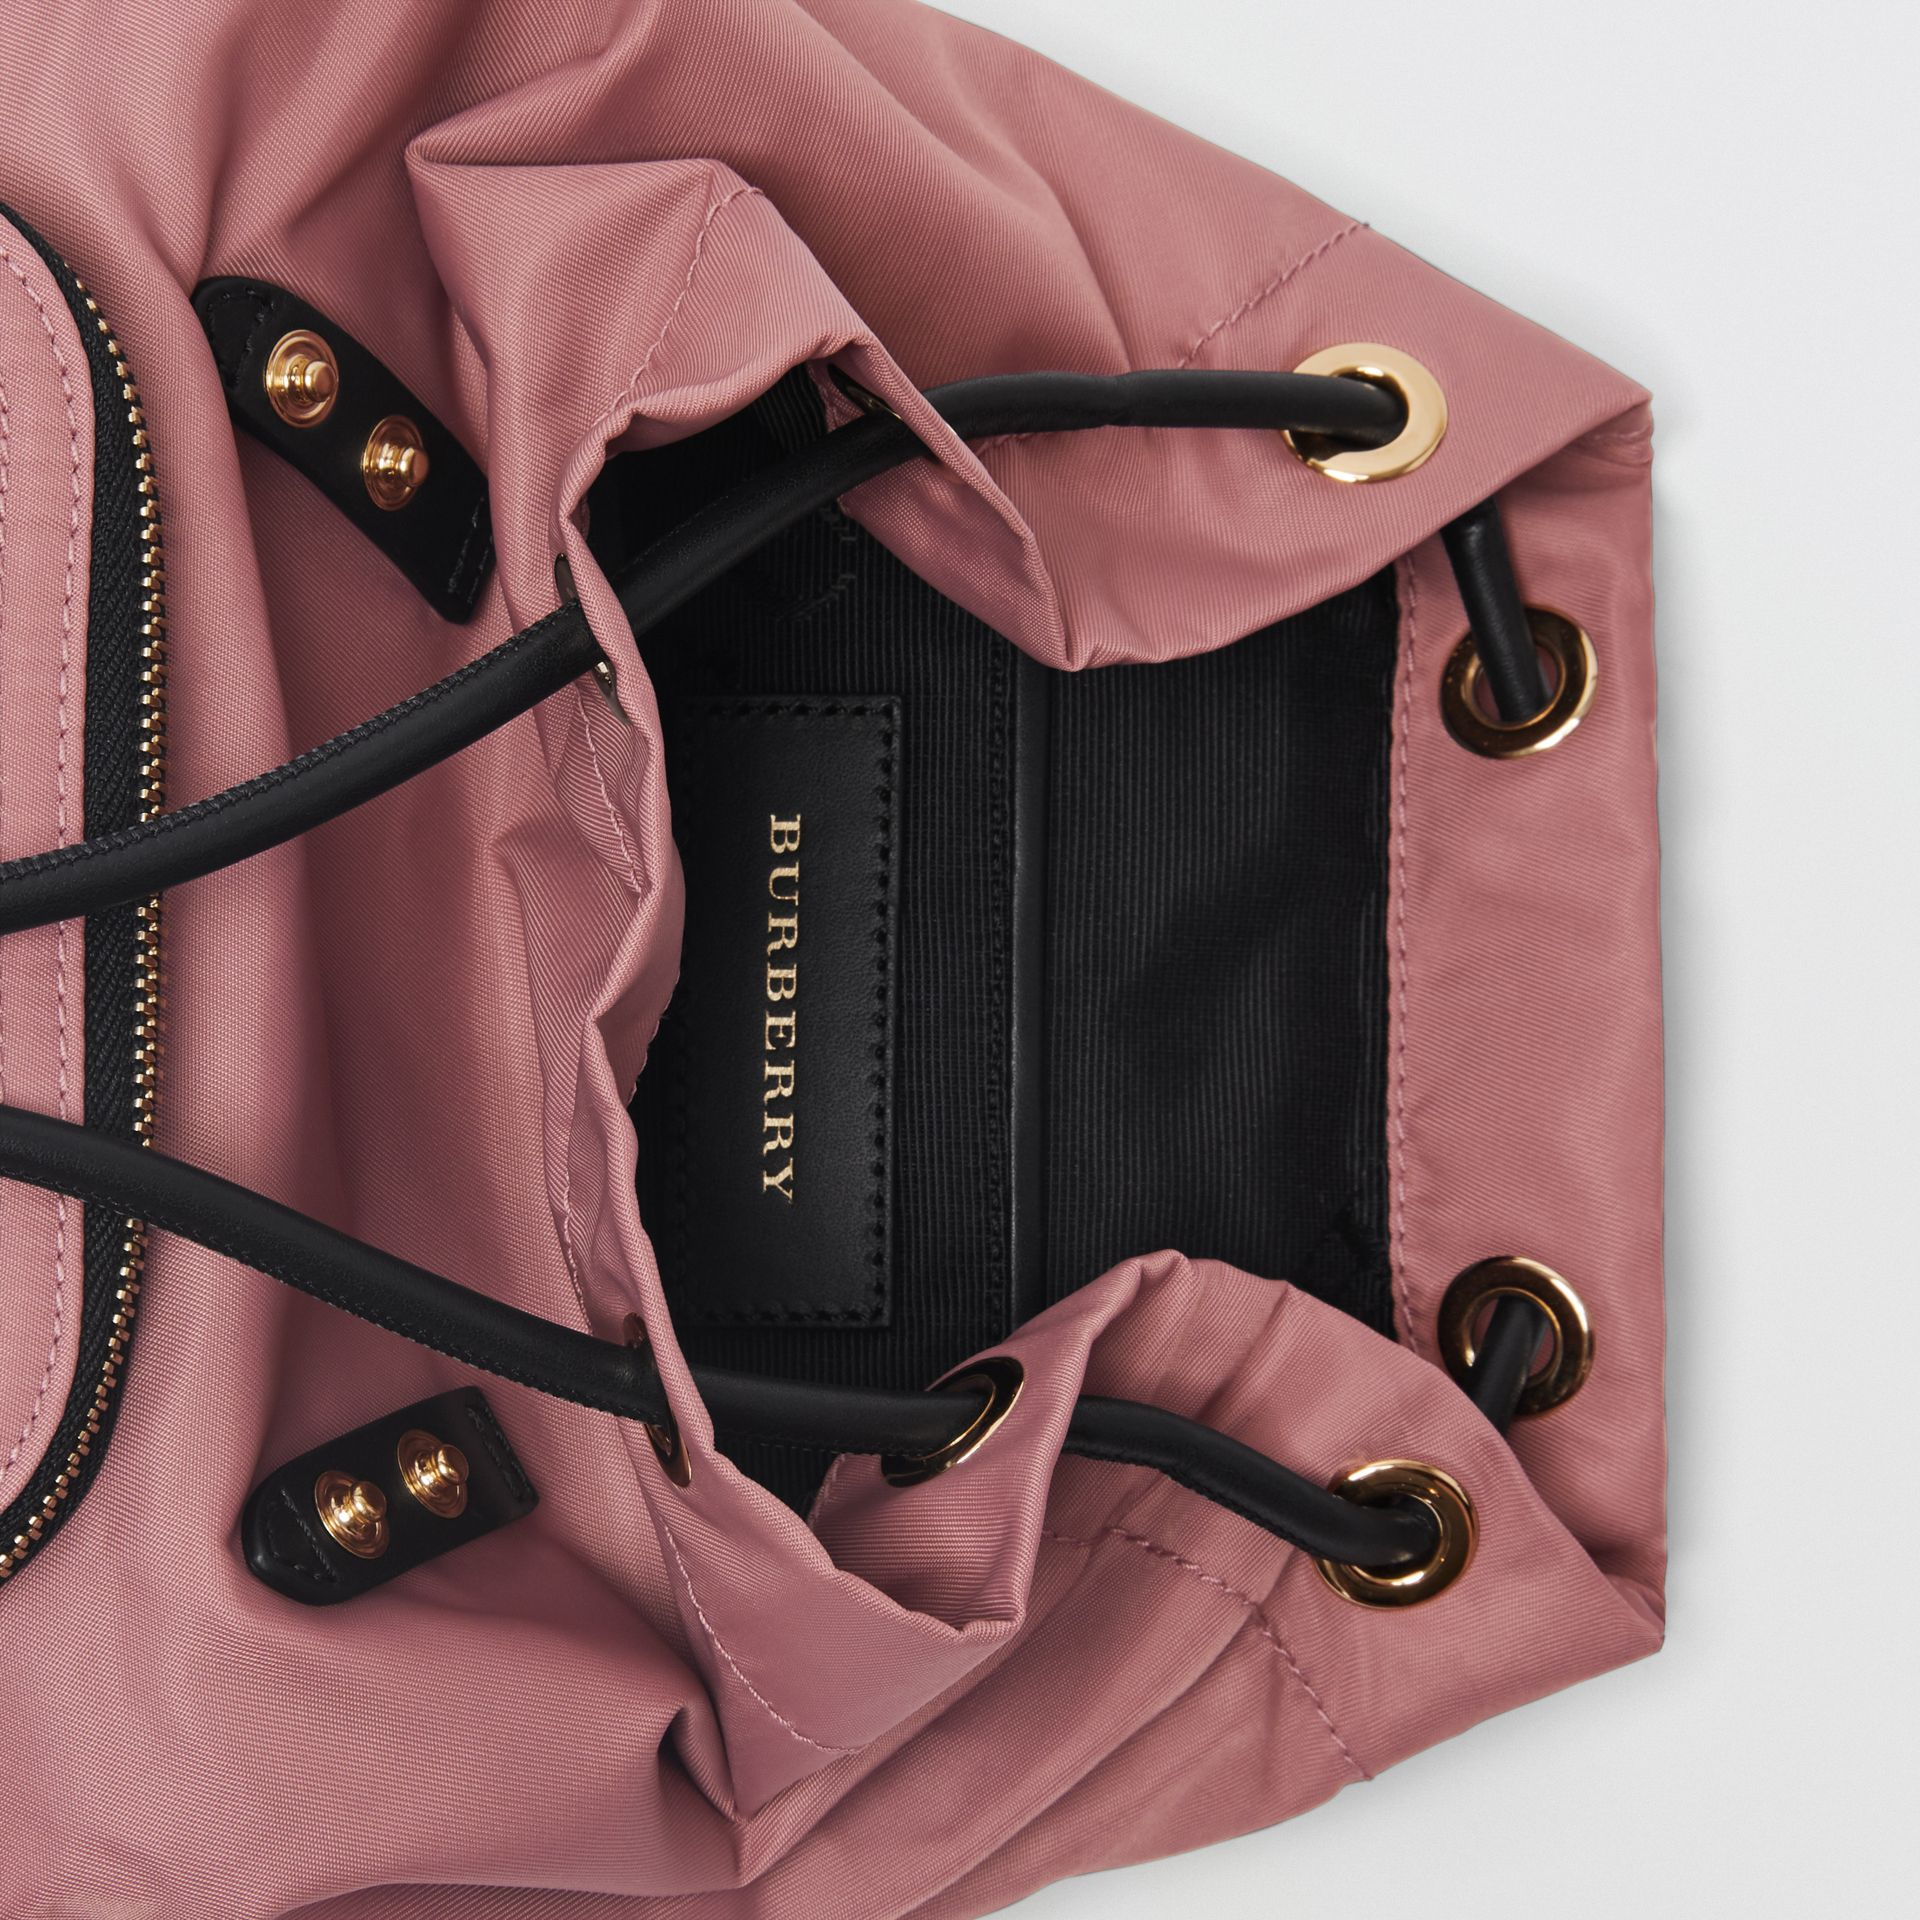 The Small Crossbody Rucksack in Nylon in Mauve Pink - Women | Burberry Canada - gallery image 5